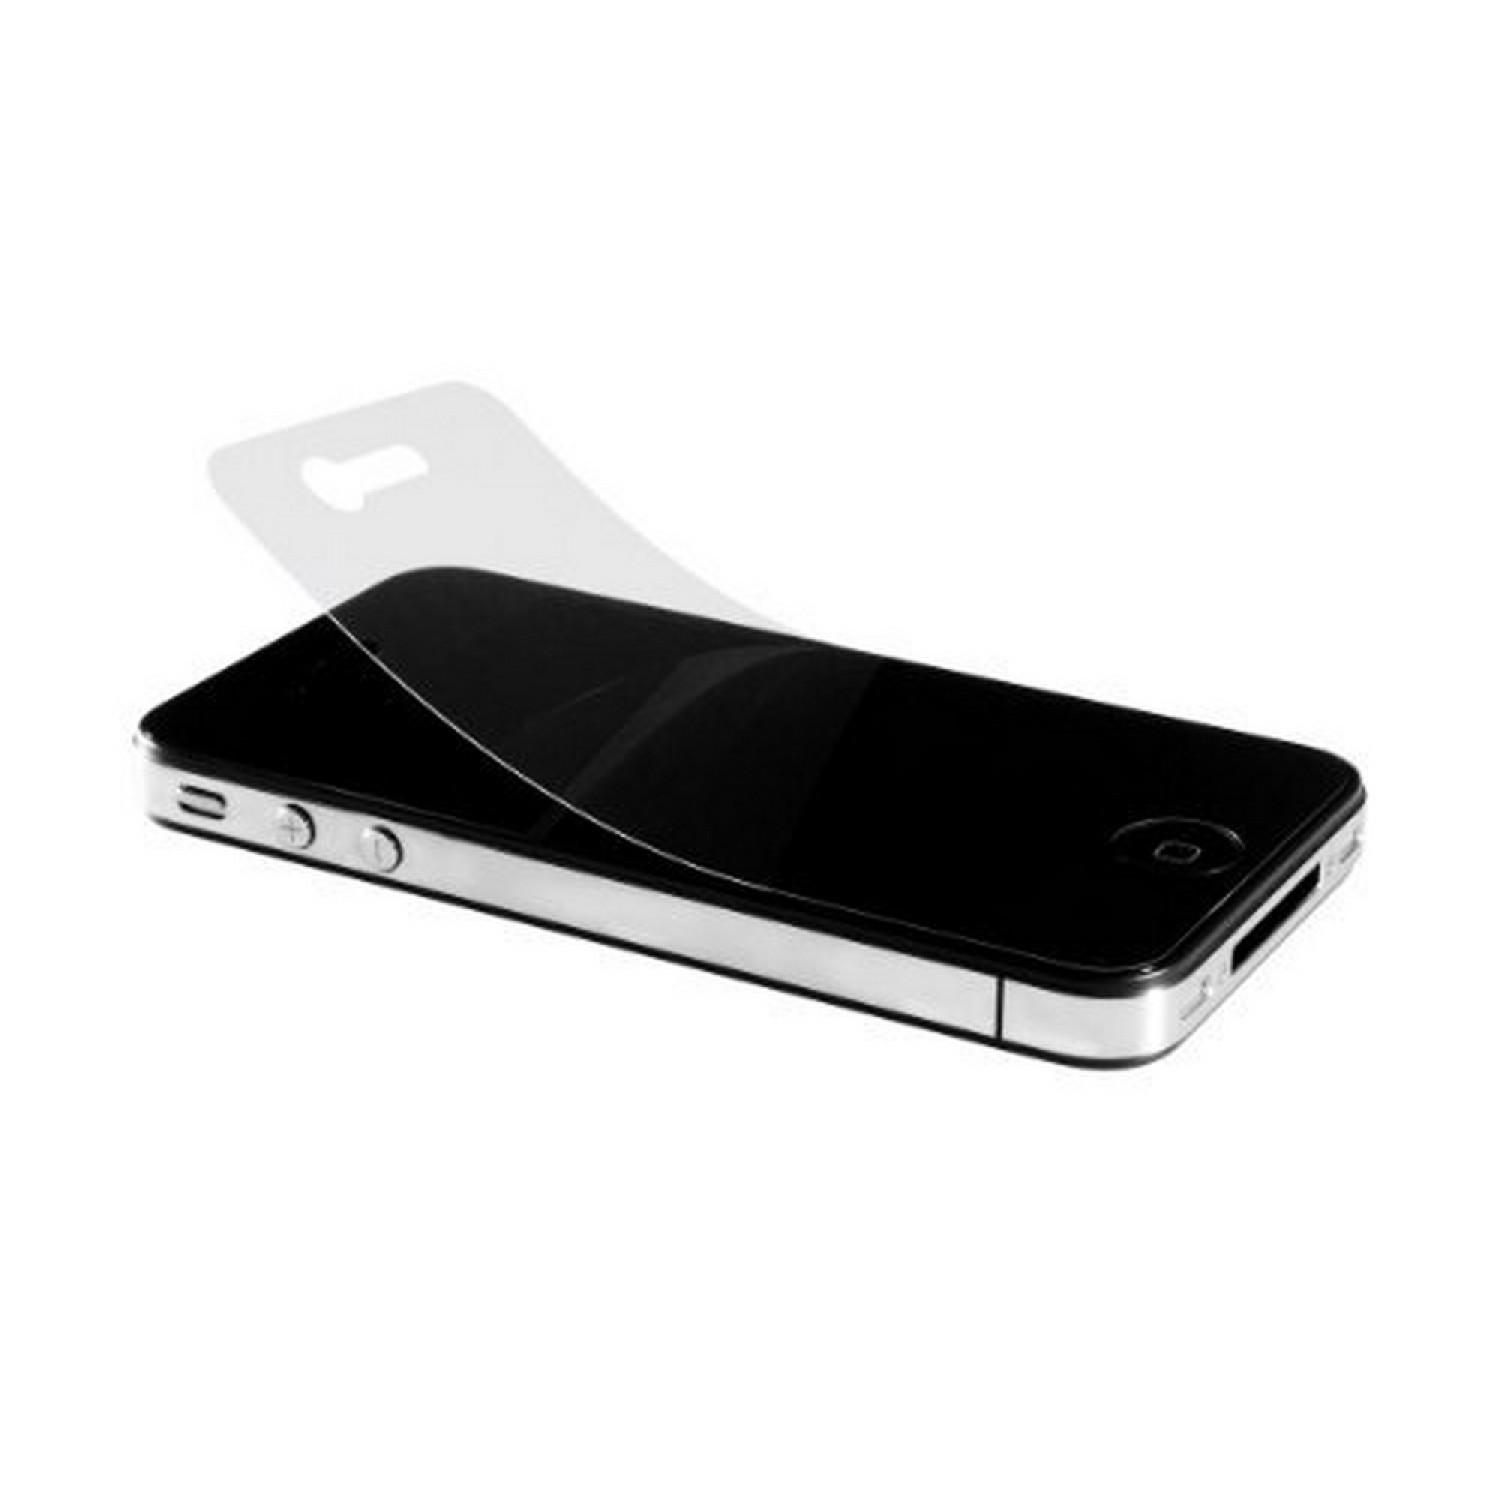 Autocollant de protection pour iPhone 4 Transparent